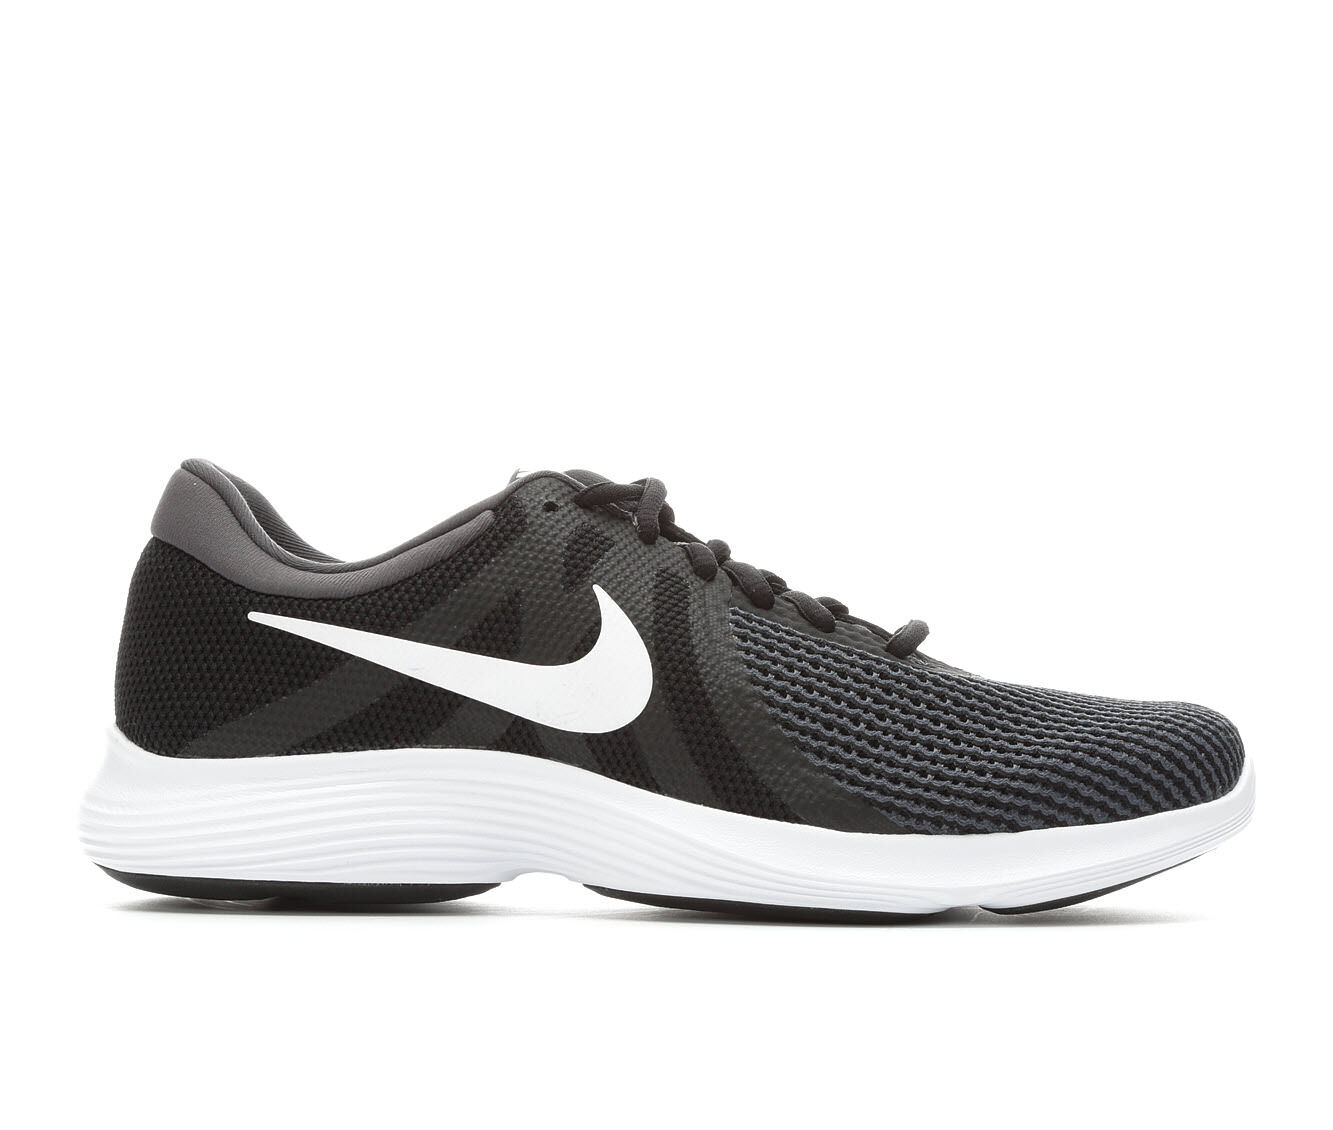 Men's Nike Revolution 4 Running Shoes Blk/Gry/Wht 001